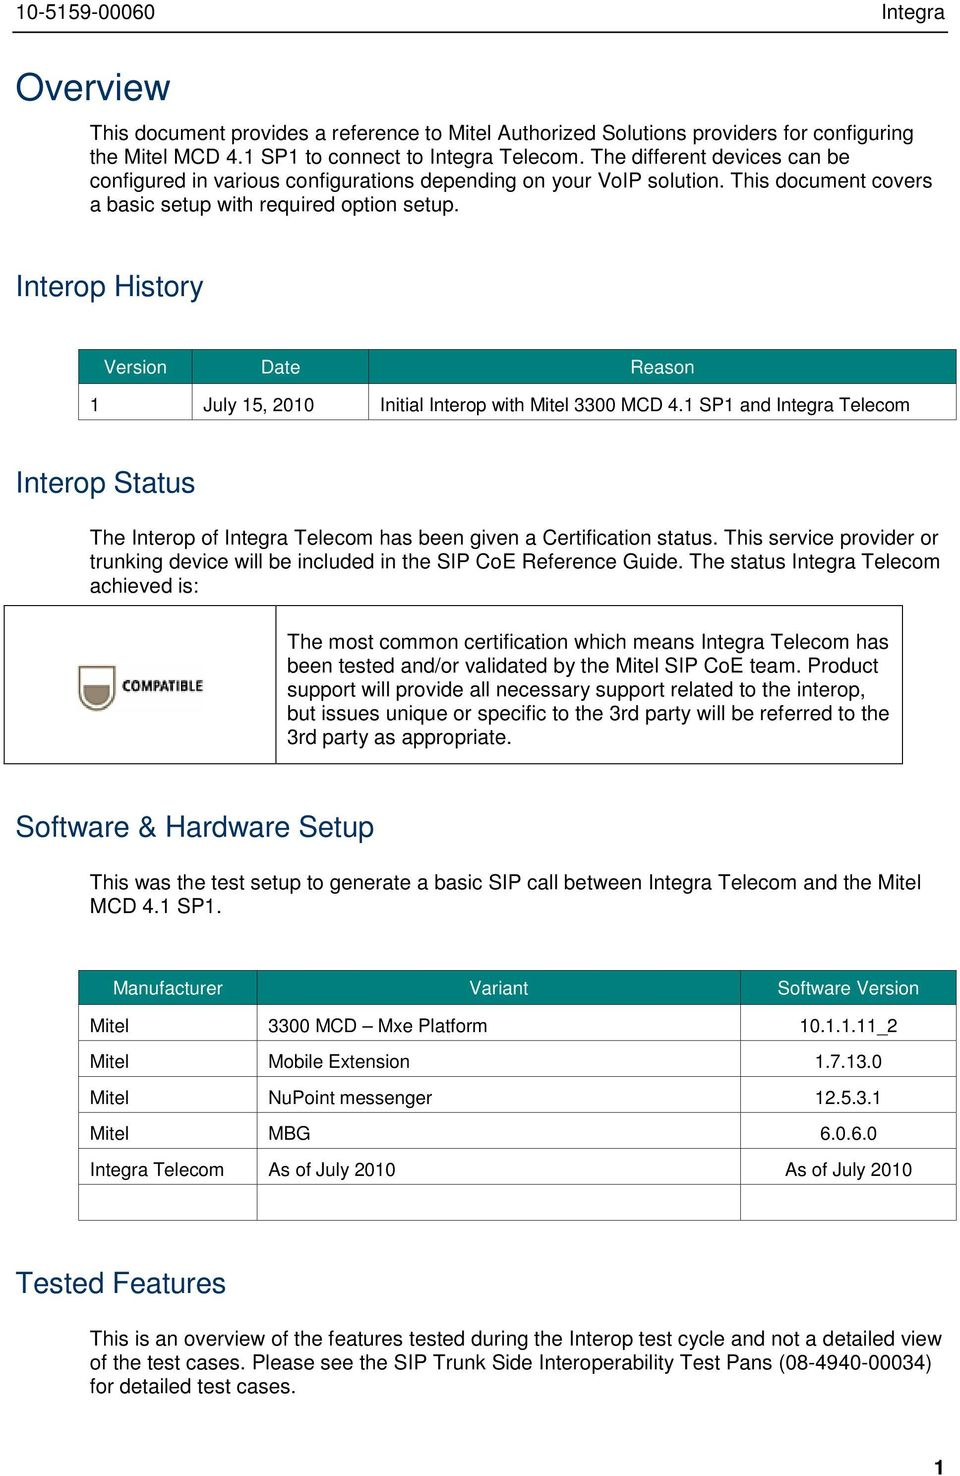 Interop History Version Date Reason 1 July 15, 2010 Initial Interop with Mitel 3300 MCD 4.1 SP1 and Integra Telecom Interop Status The Interop of Integra Telecom has been given a Certification status.